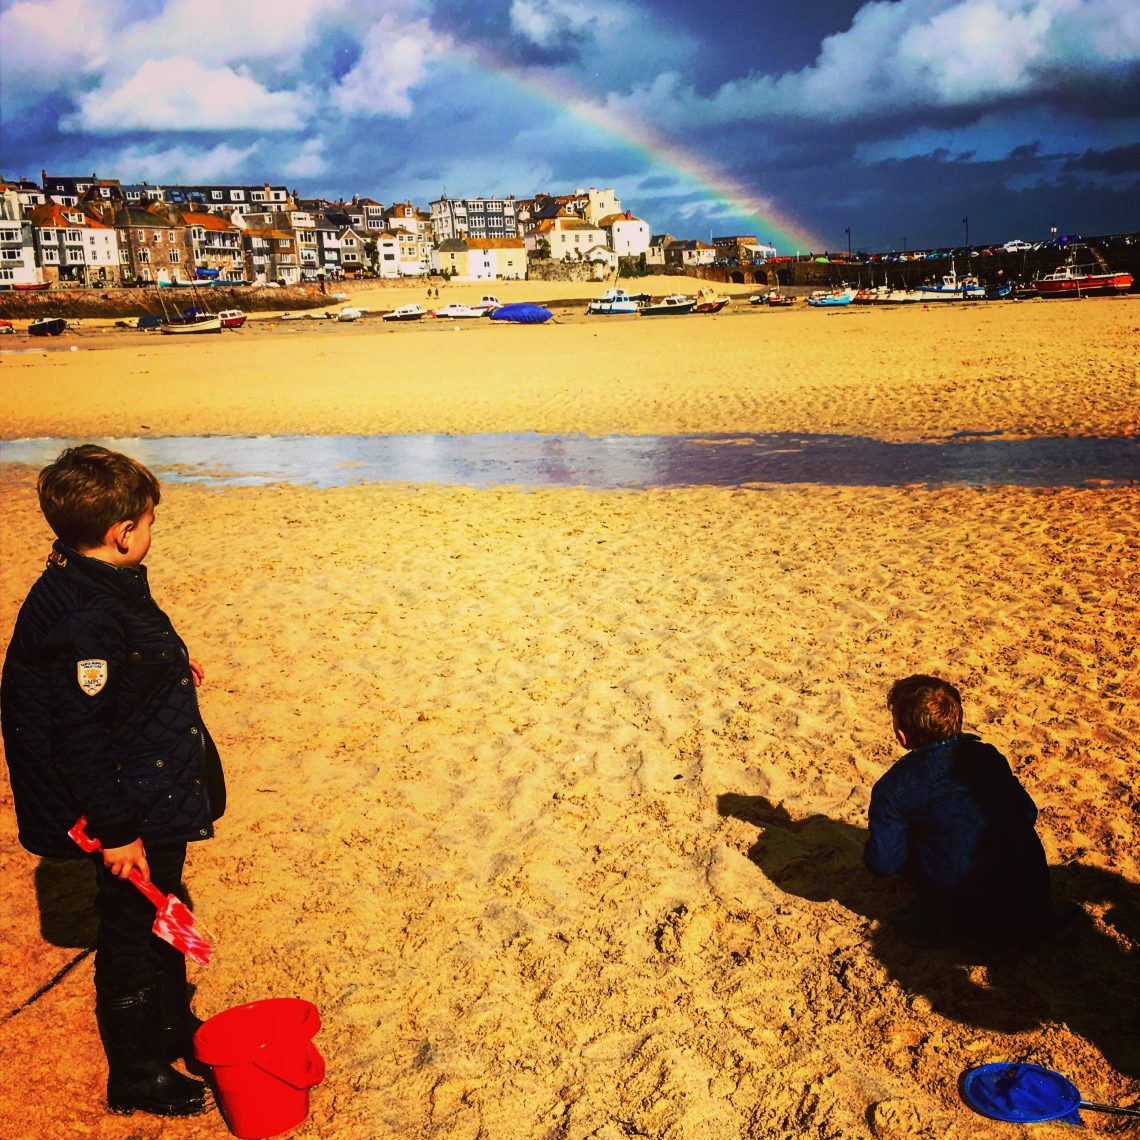 Rainbow over St Ives by KJ Duffield